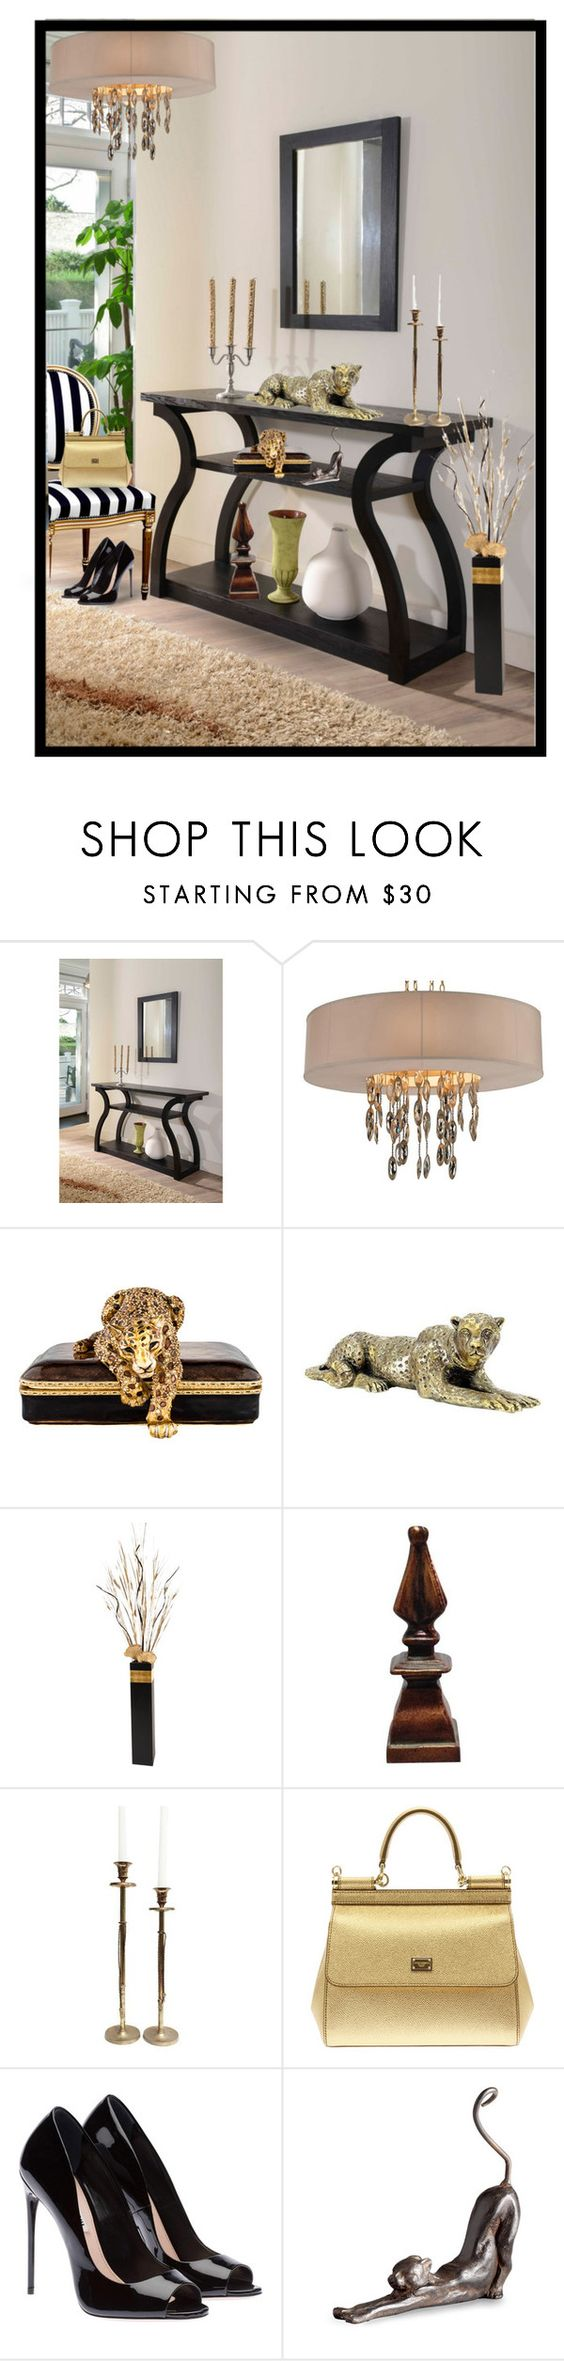 """The Entry"" by chileez ❤ liked on Polyvore featuring interior, interiors, interior design, home, home decor, interior decorating, Furniture of America, Jay Strongwater, GREEN and Dolce&Gabbana"